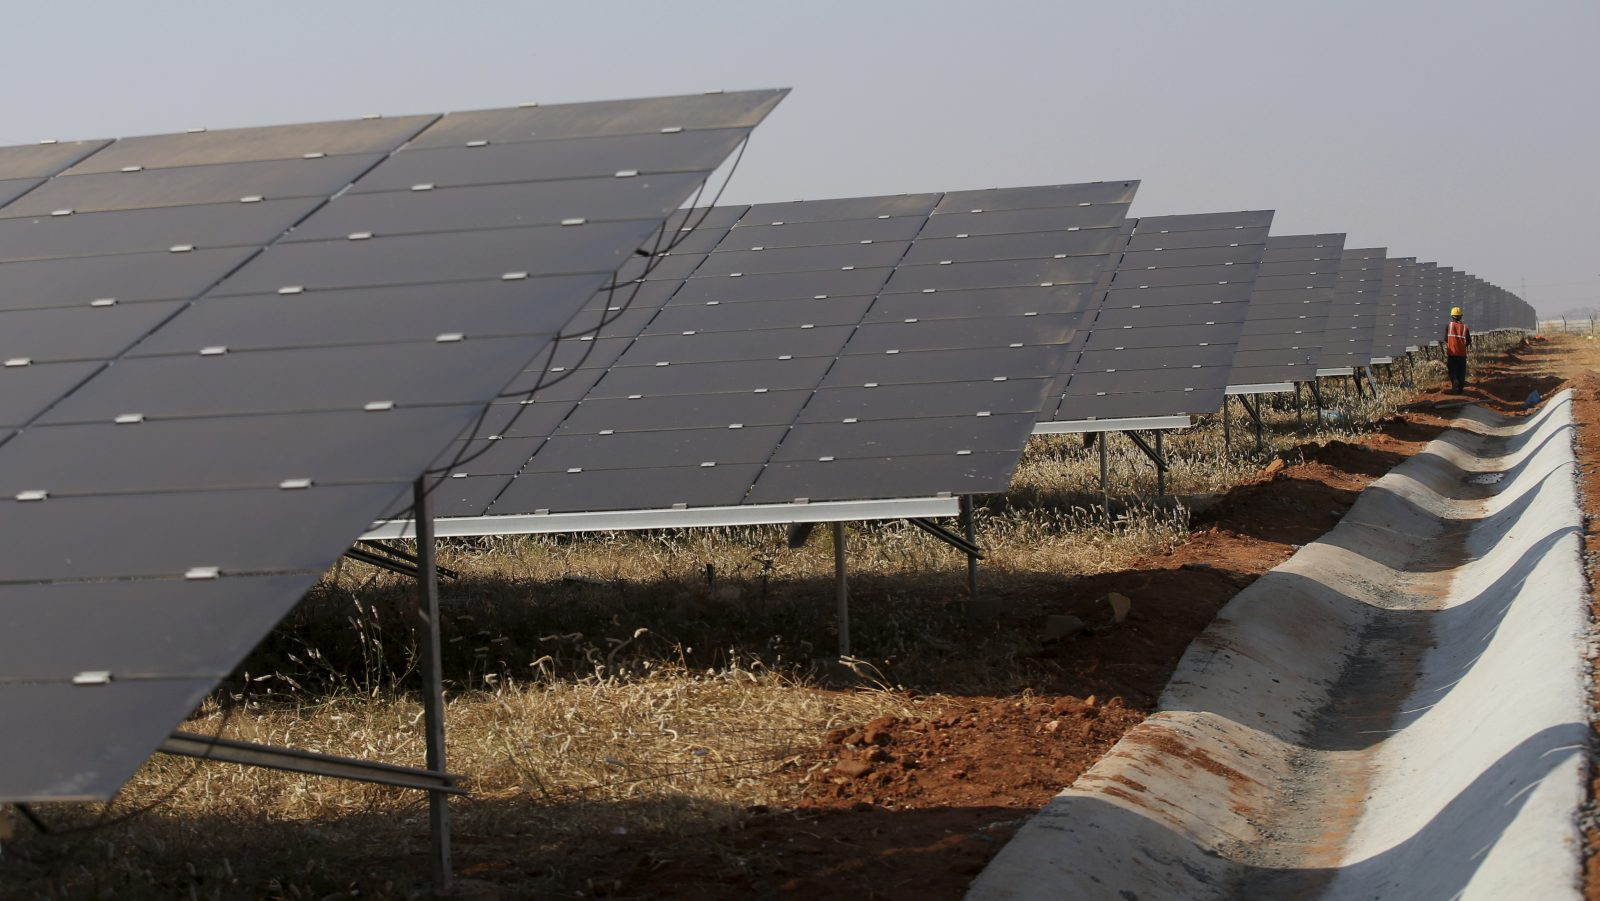 A worker walks past solar panels installed at the Pavagada Solar Park 175 kilometers (109 miles) north of Bangalore, India, Thursday, March 1, 2018. Spanning 5260 hectares (13,000 acres) across five villages and built with investment of INR 16,500 crore (USD $ 2.5 billion), the park that was inaugurated Thursday is expected to produce 2000 megawatts of power according to a press release. (AP Photo/Aijaz Rahi)